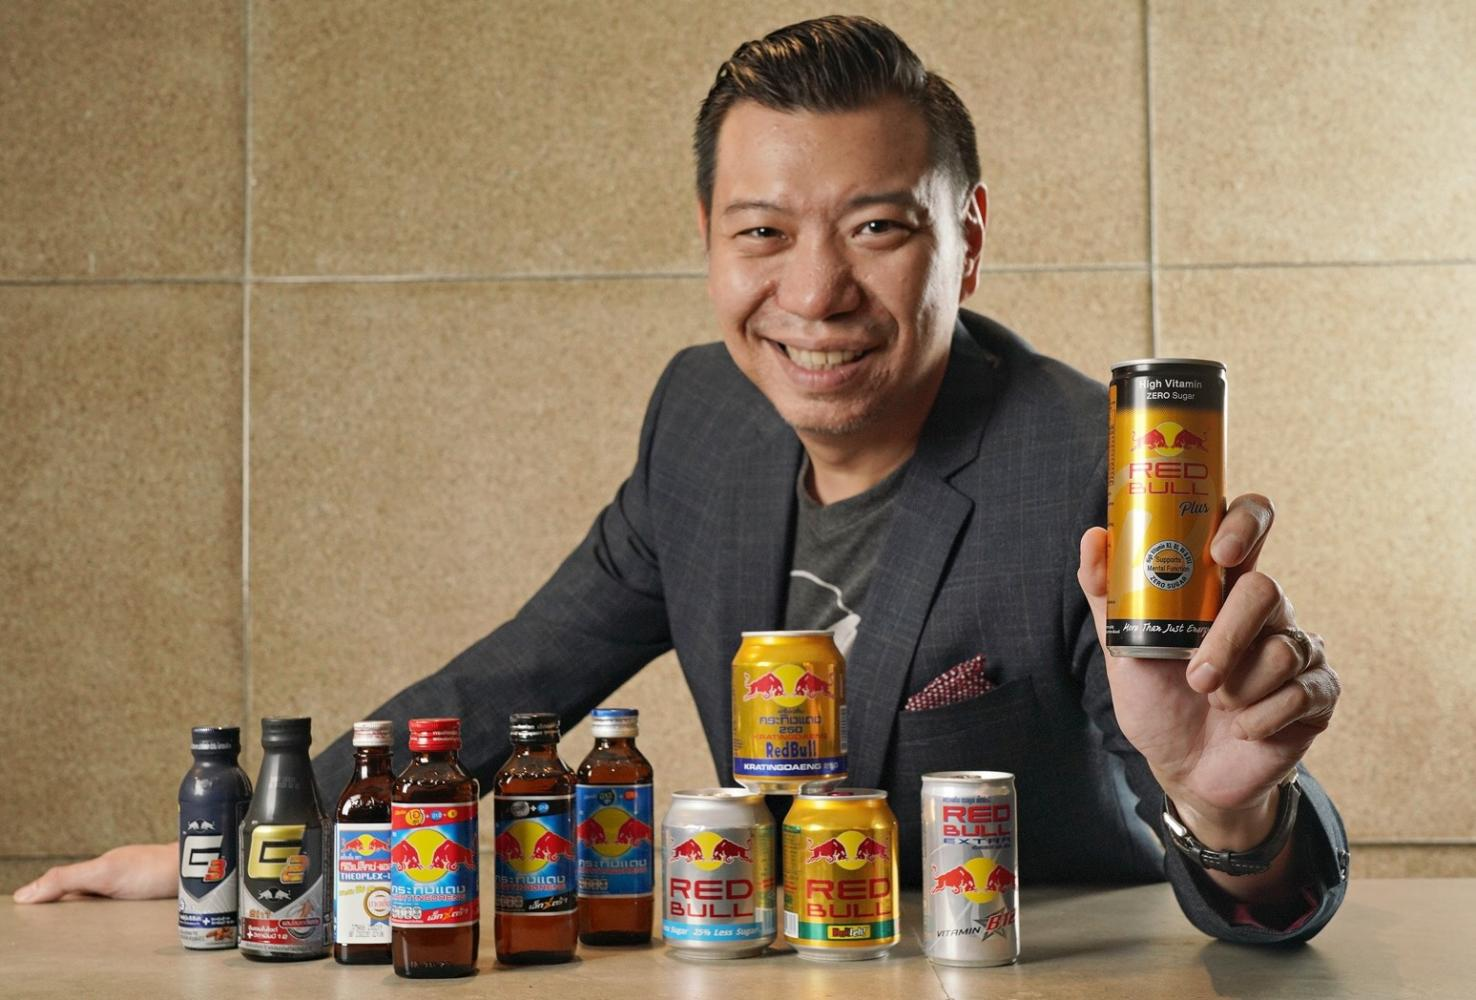 Mr Supachai shows some products under the Krating Daeng and Red Bull brands.